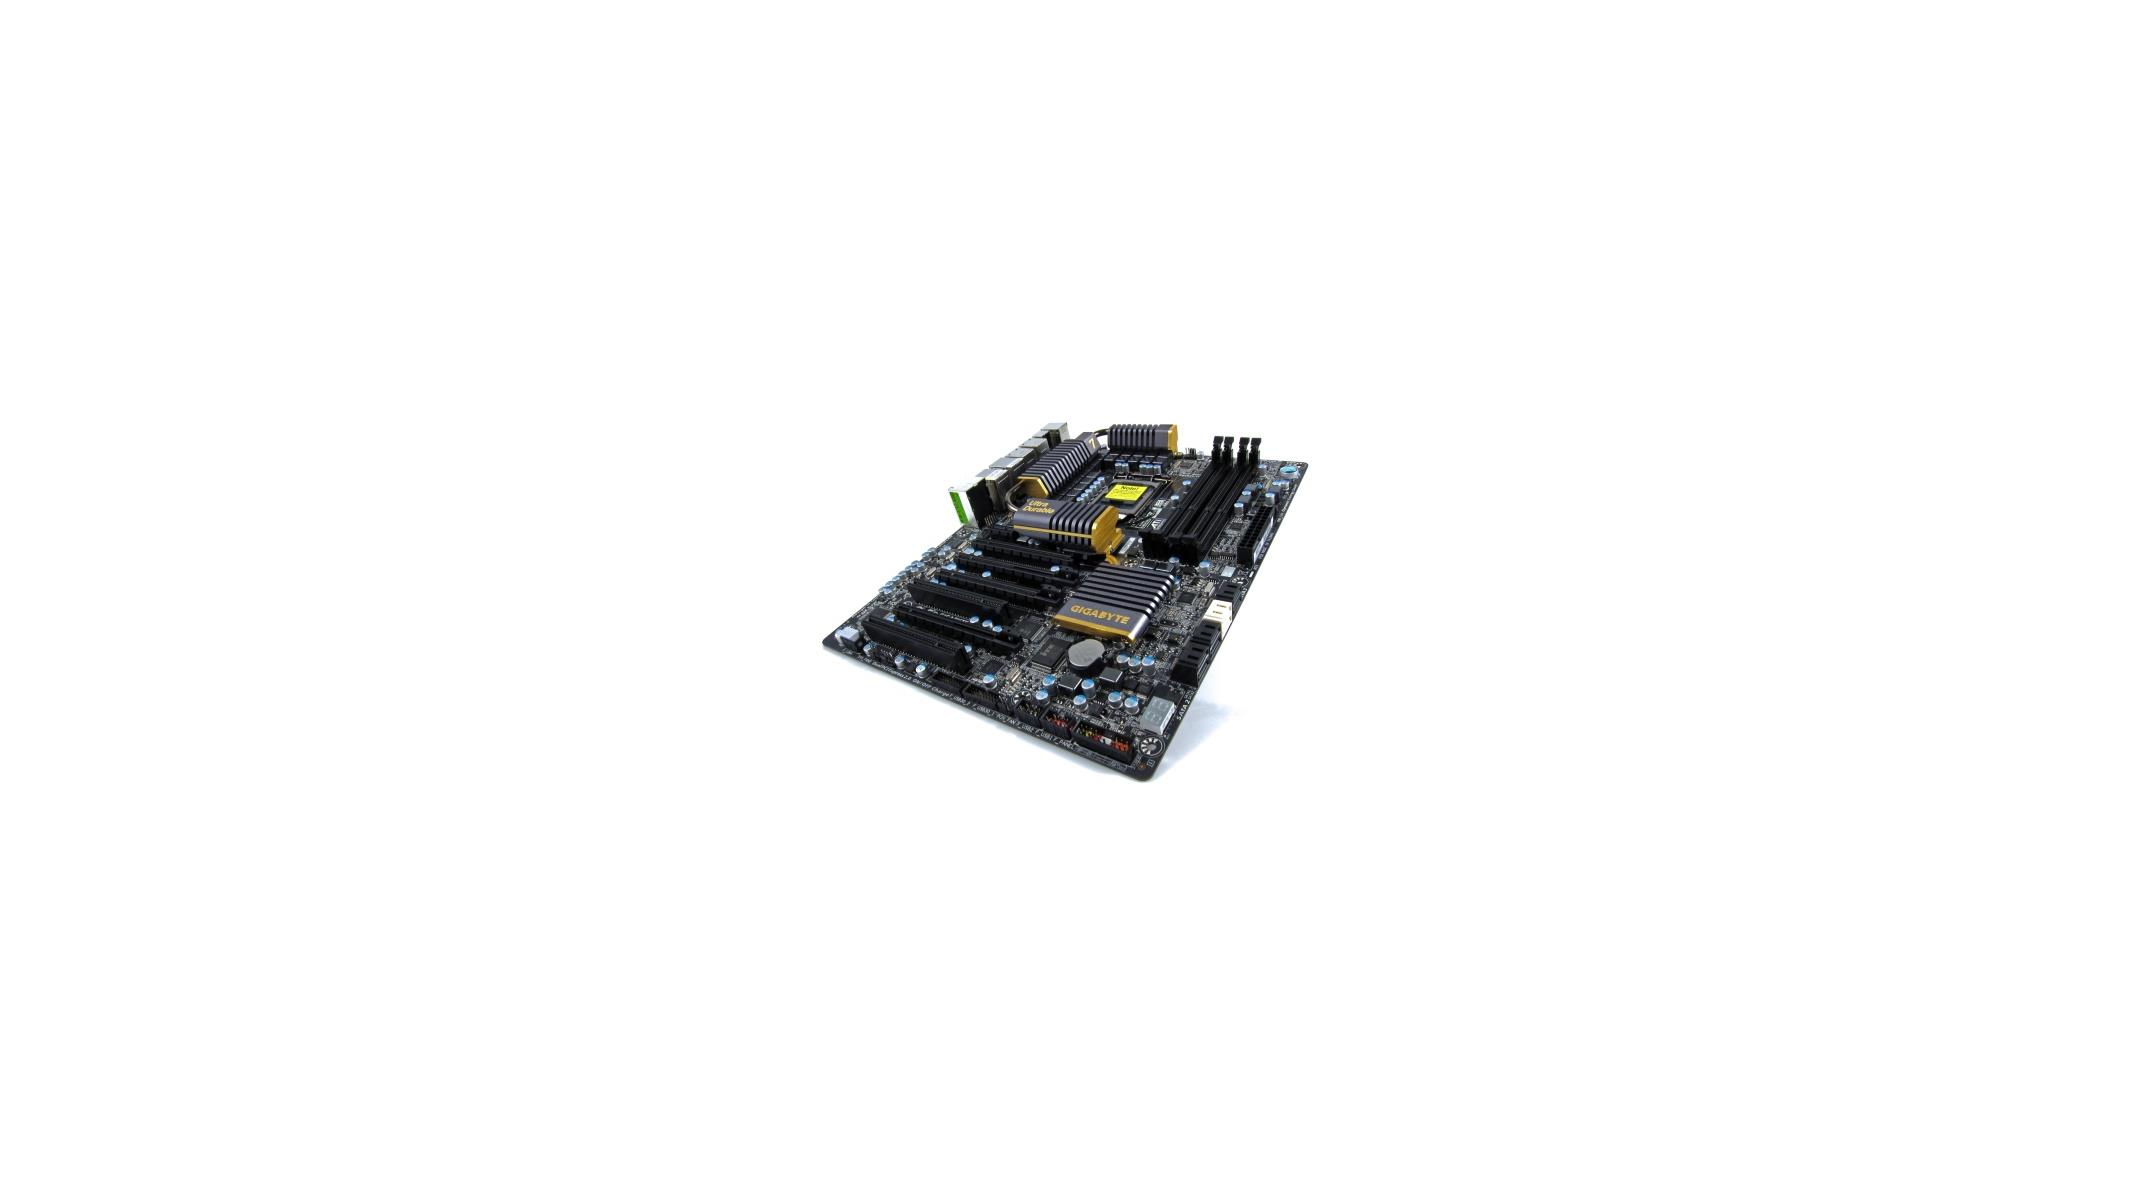 GIGABYTE T1125M NOTEBOOK RENESAS USB 3.0 CONTROLLER DRIVER FOR PC